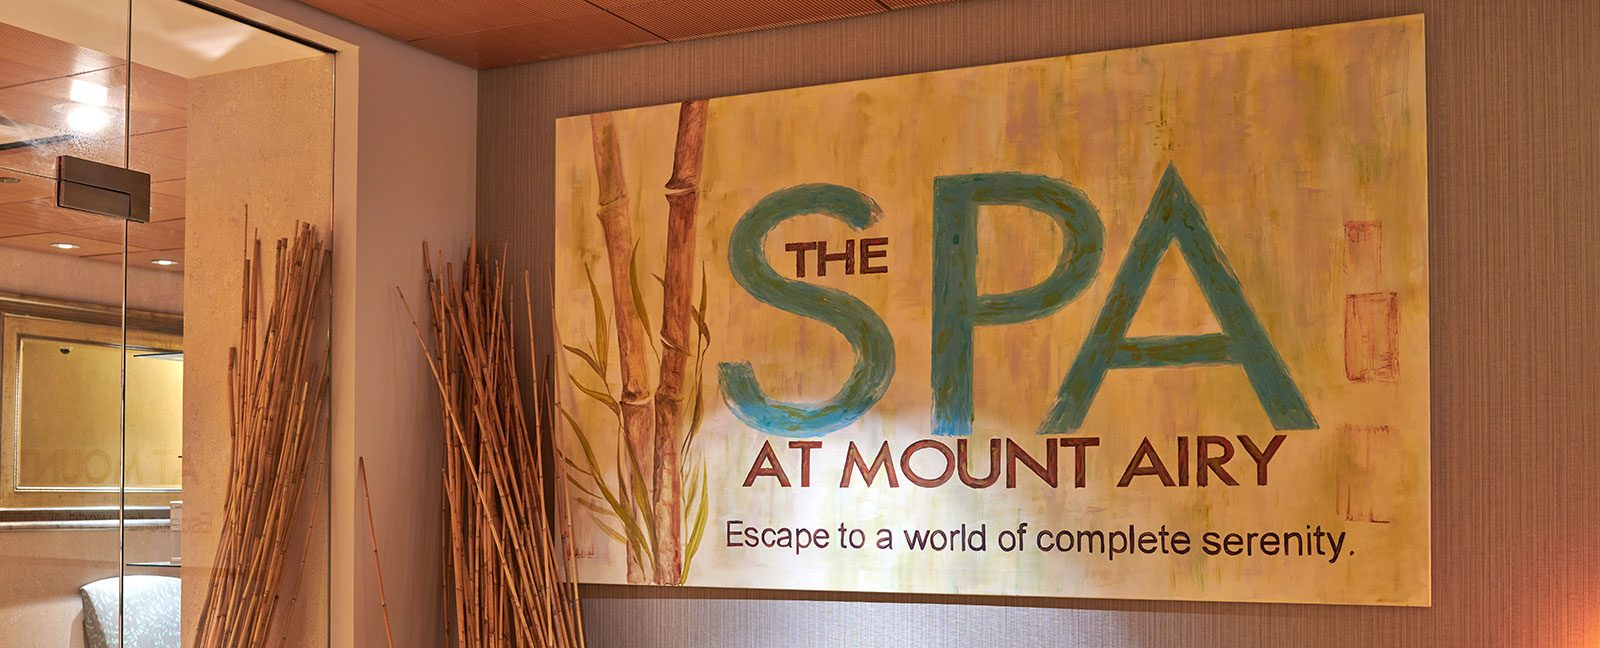 the spa at mount airy - escape to a world of complete serenity